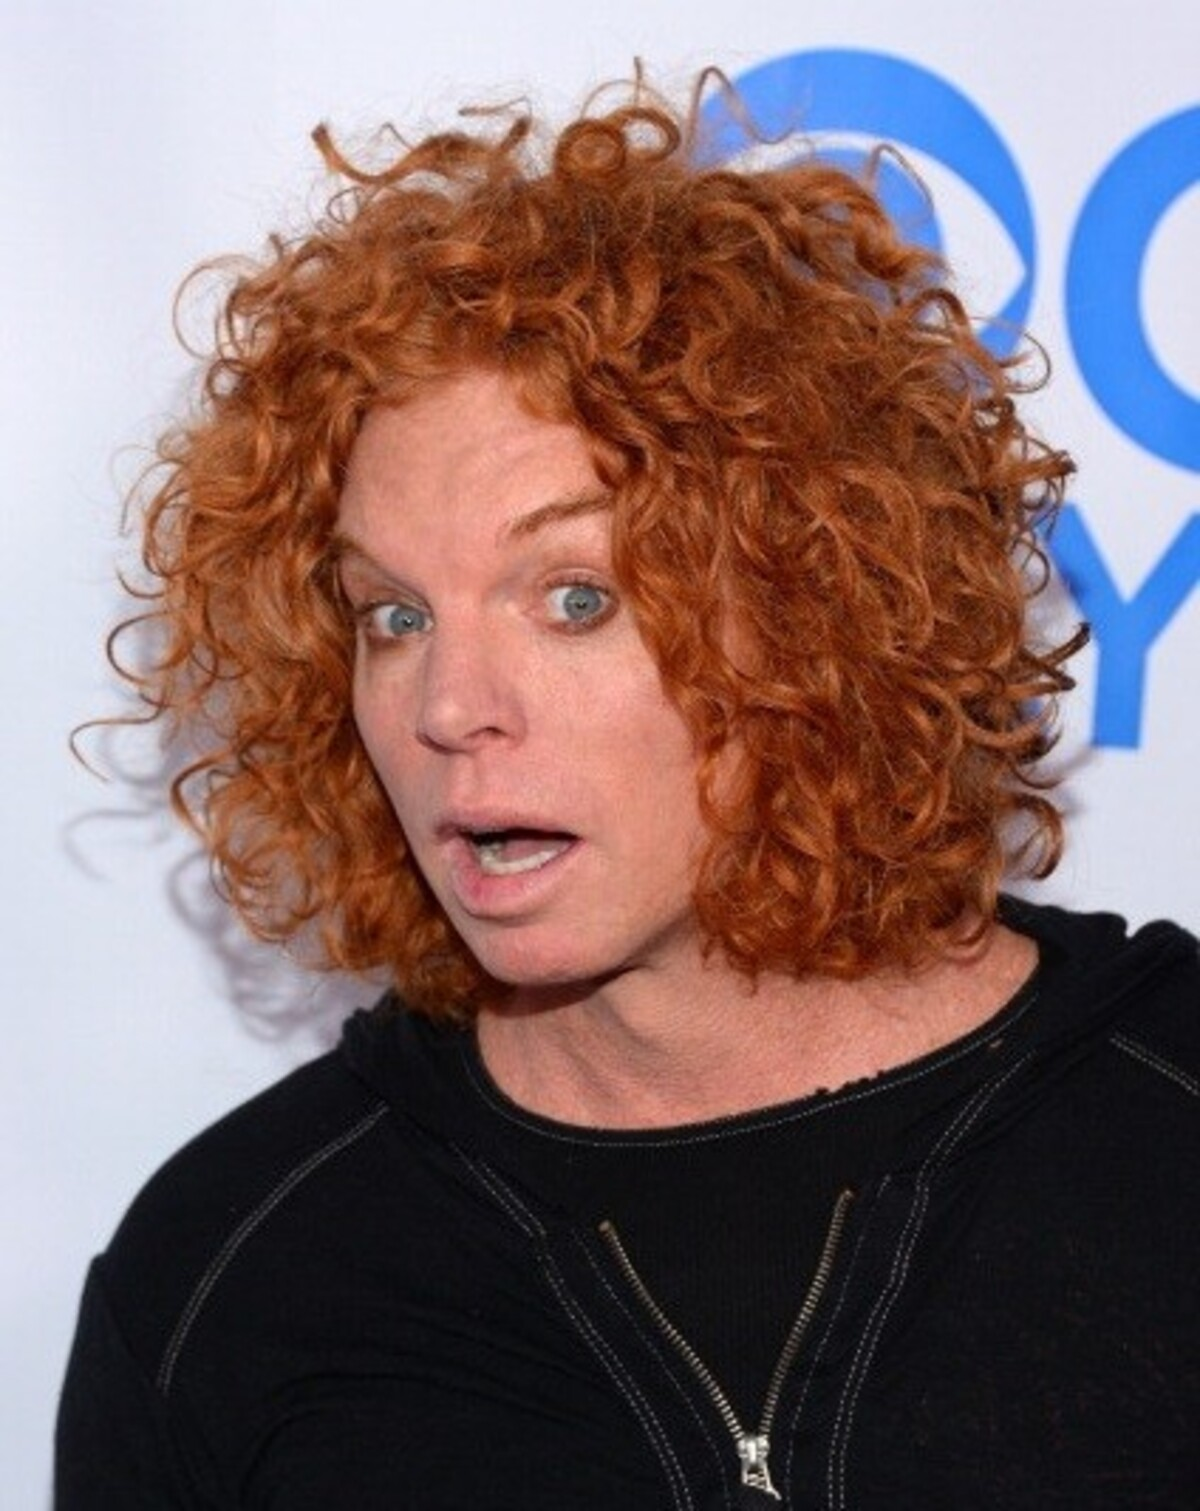 The 54-year old son of father (?) and mother(?) Carrot Top in 2019 photo. Carrot Top earned a  million dollar salary - leaving the net worth at  million in 2019